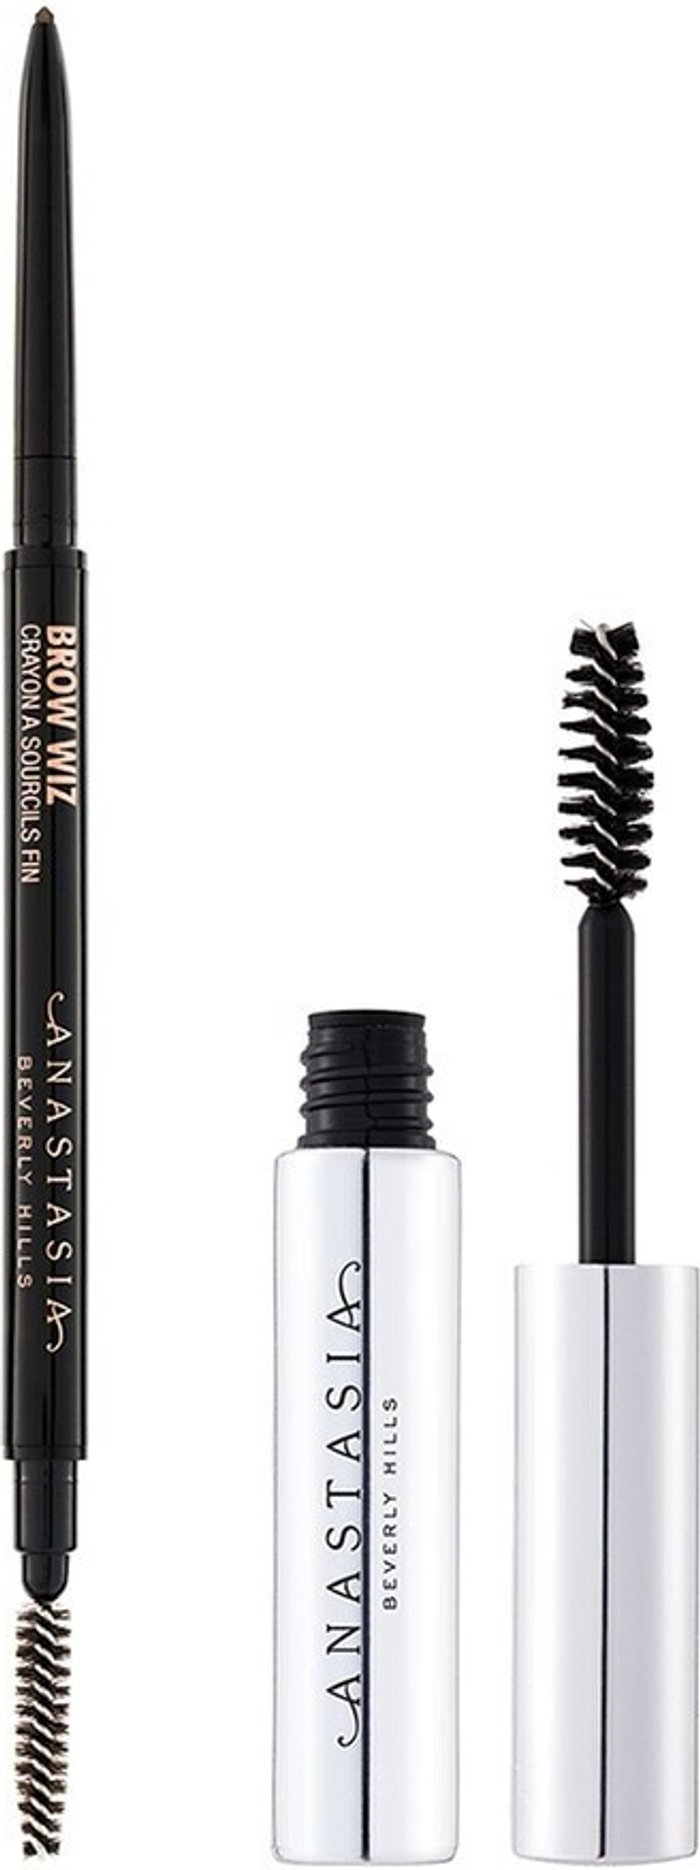 Anastasia Beverly Hills Anastasia Beverly Hills Better Together Brow Kit Soft Brown (2pcs.)